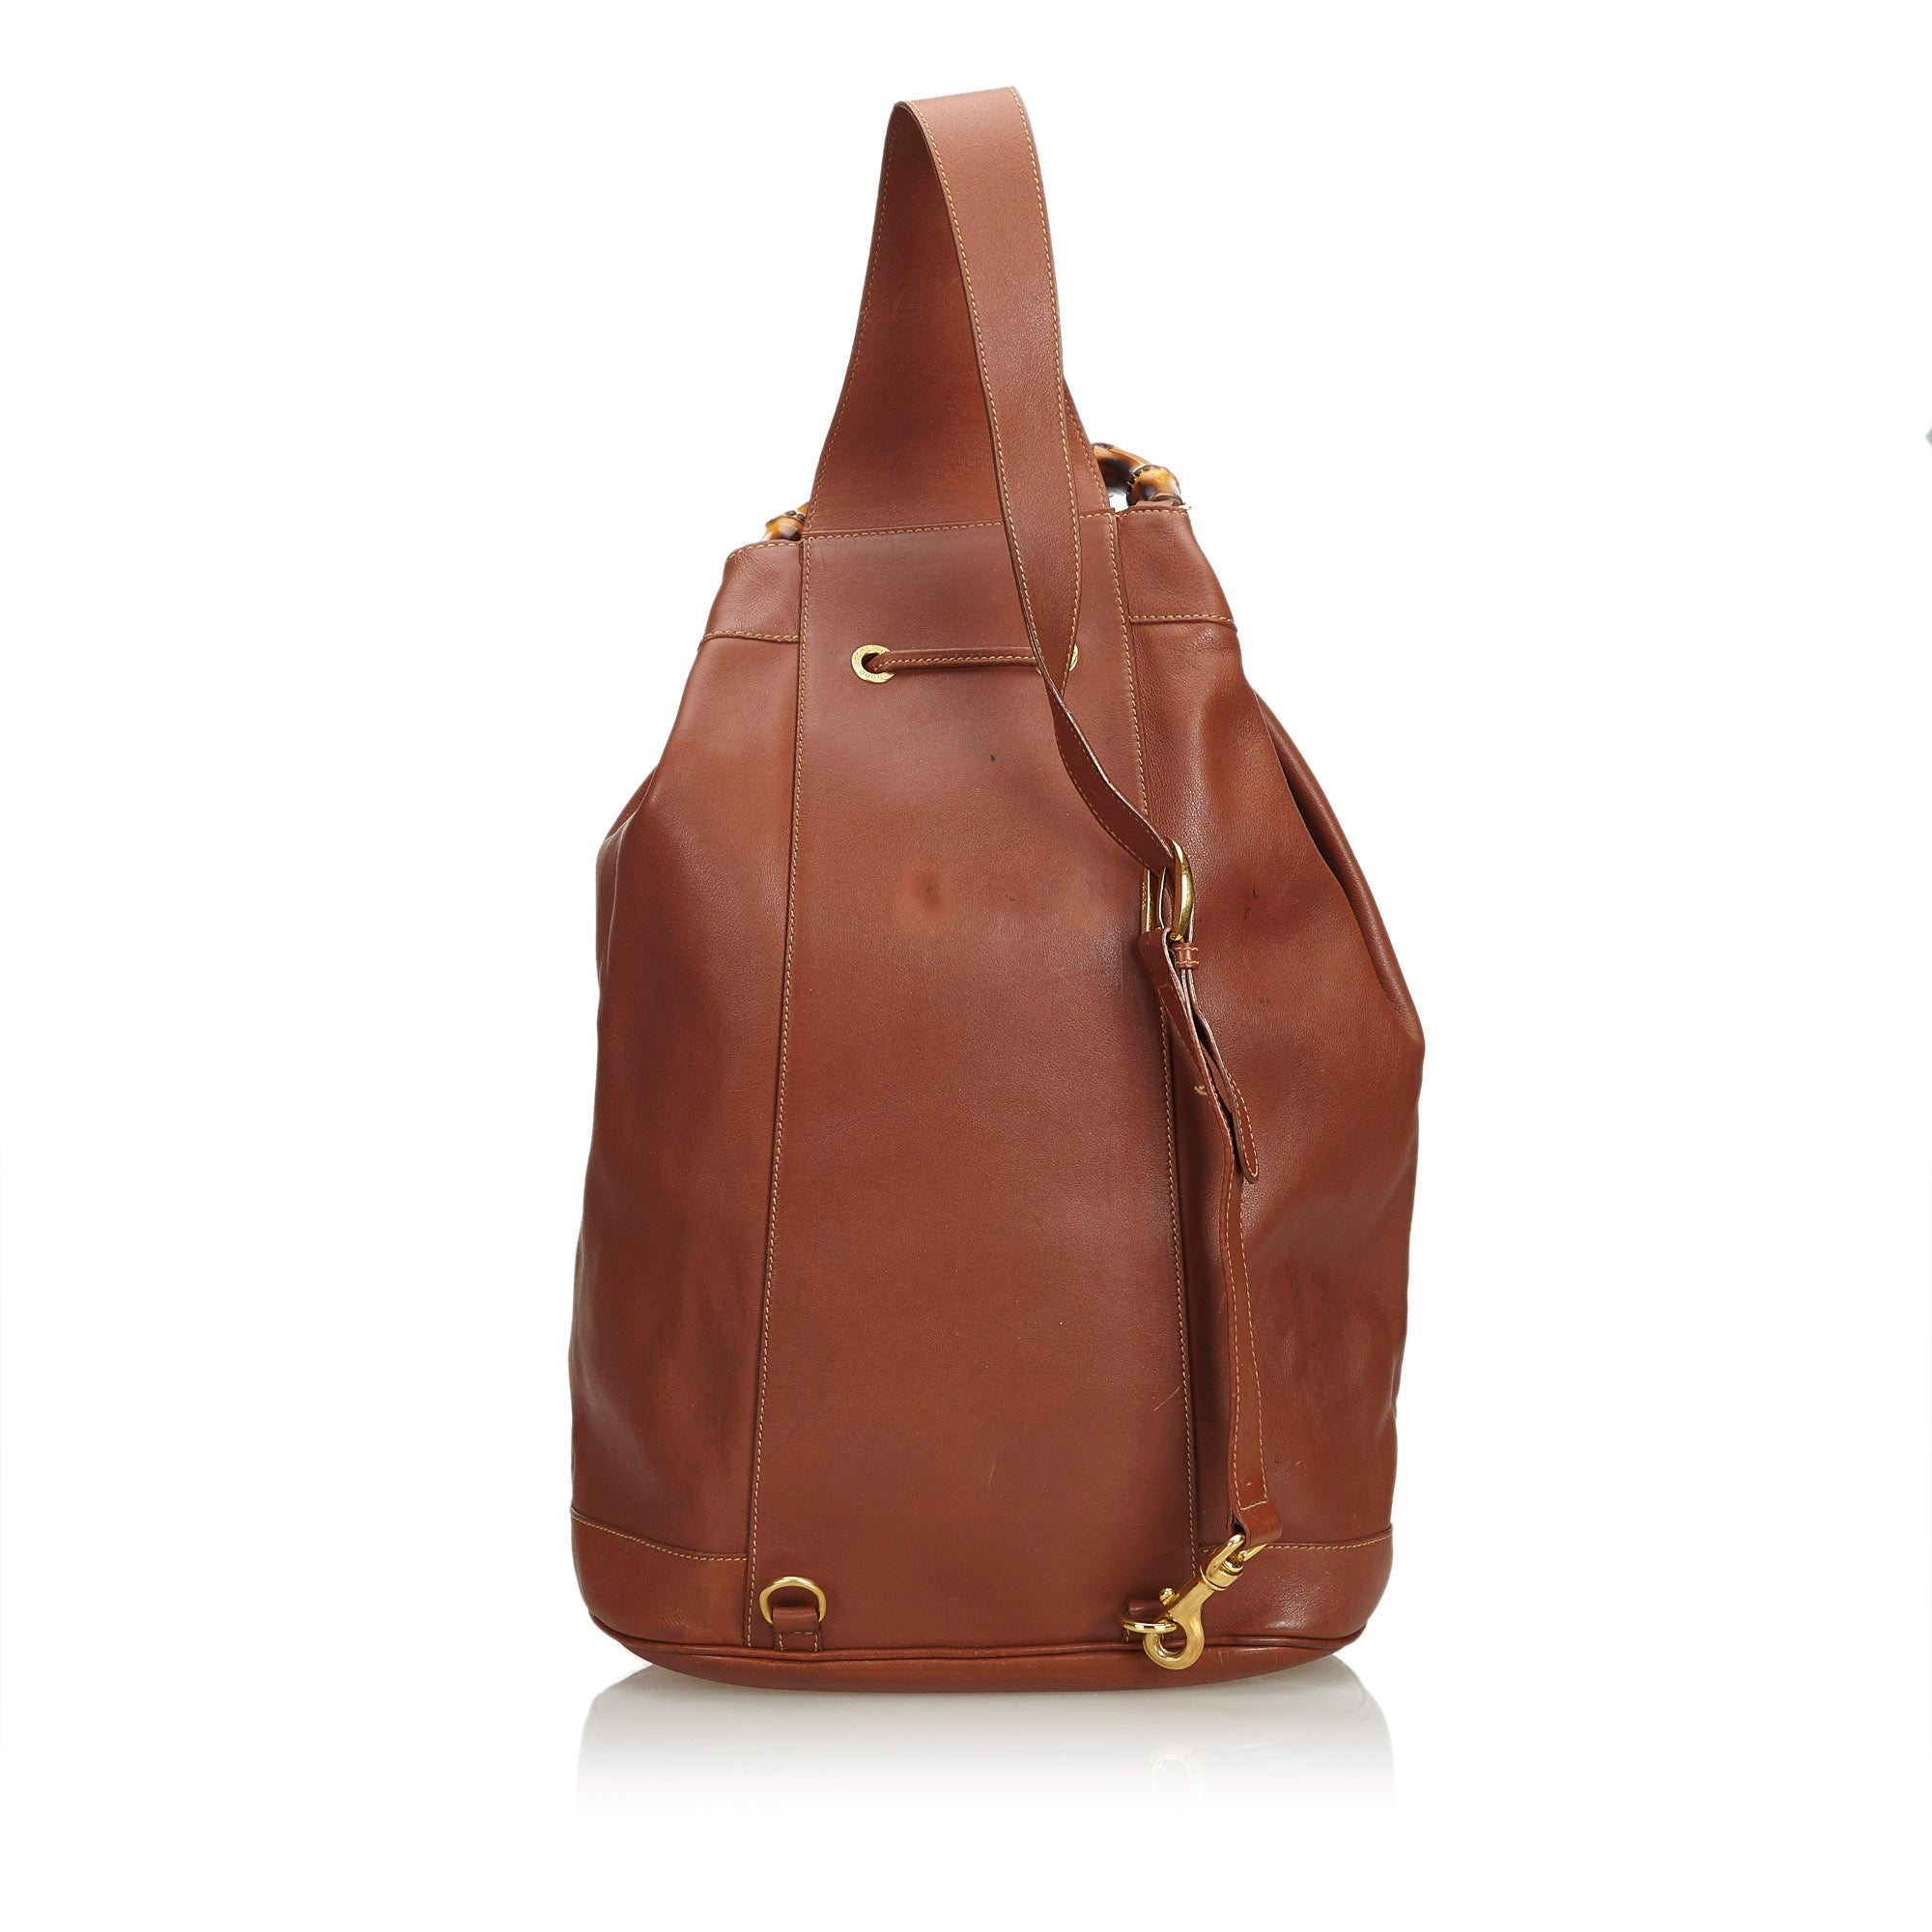 745b5392f22 Gucci Brown Leather Bamboo Drawstring Backpack Italy at 1stdibs